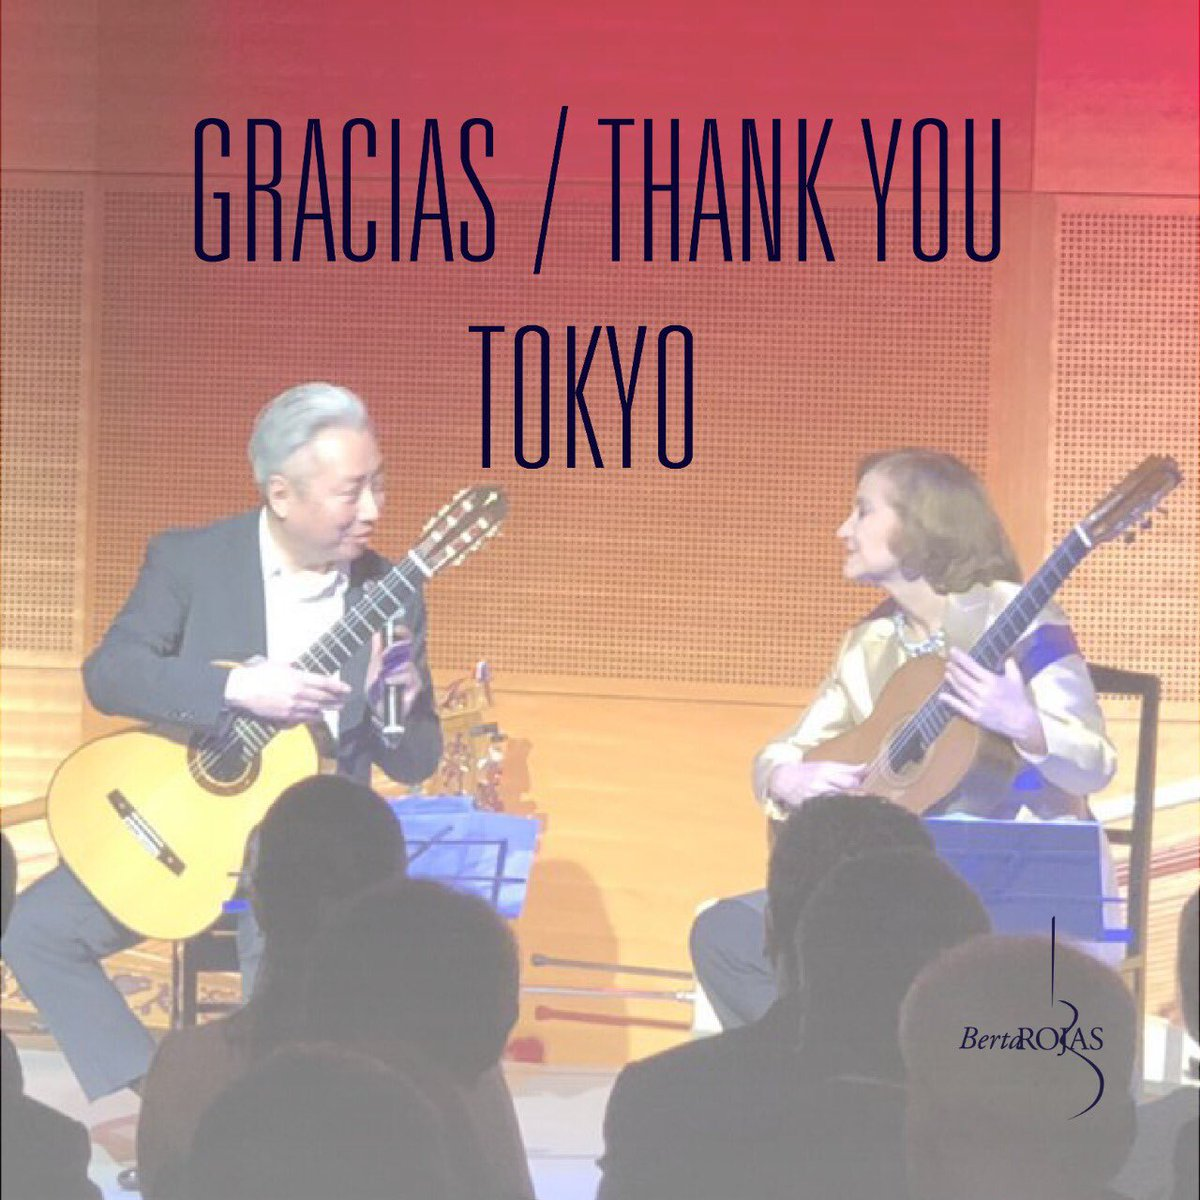 Happy Independence Day Paraguay! We celebrate you from across the world!  Special thanks to the Paraguayan Embassy in Japan, to Ambassador Raúl Florentin and Ambassador Naoyuki Toyotoshi. Thanks Min-On for hosting the event. Thanks Maestro Suin-Ichi Fukuda for playing tonight!